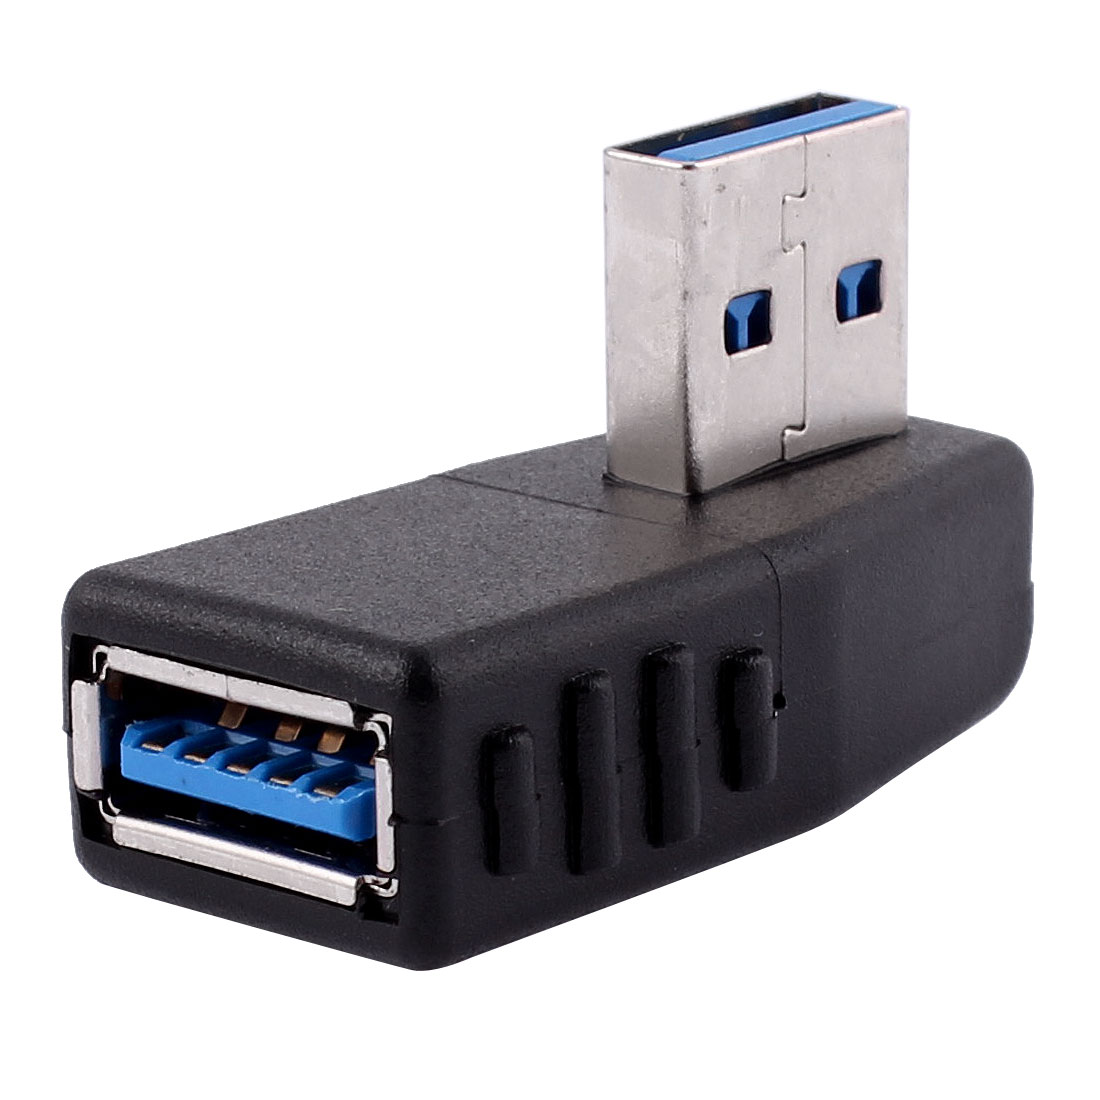 Right Angle USB 3.0 Type A Male to Female M/F Adapter Connector Black